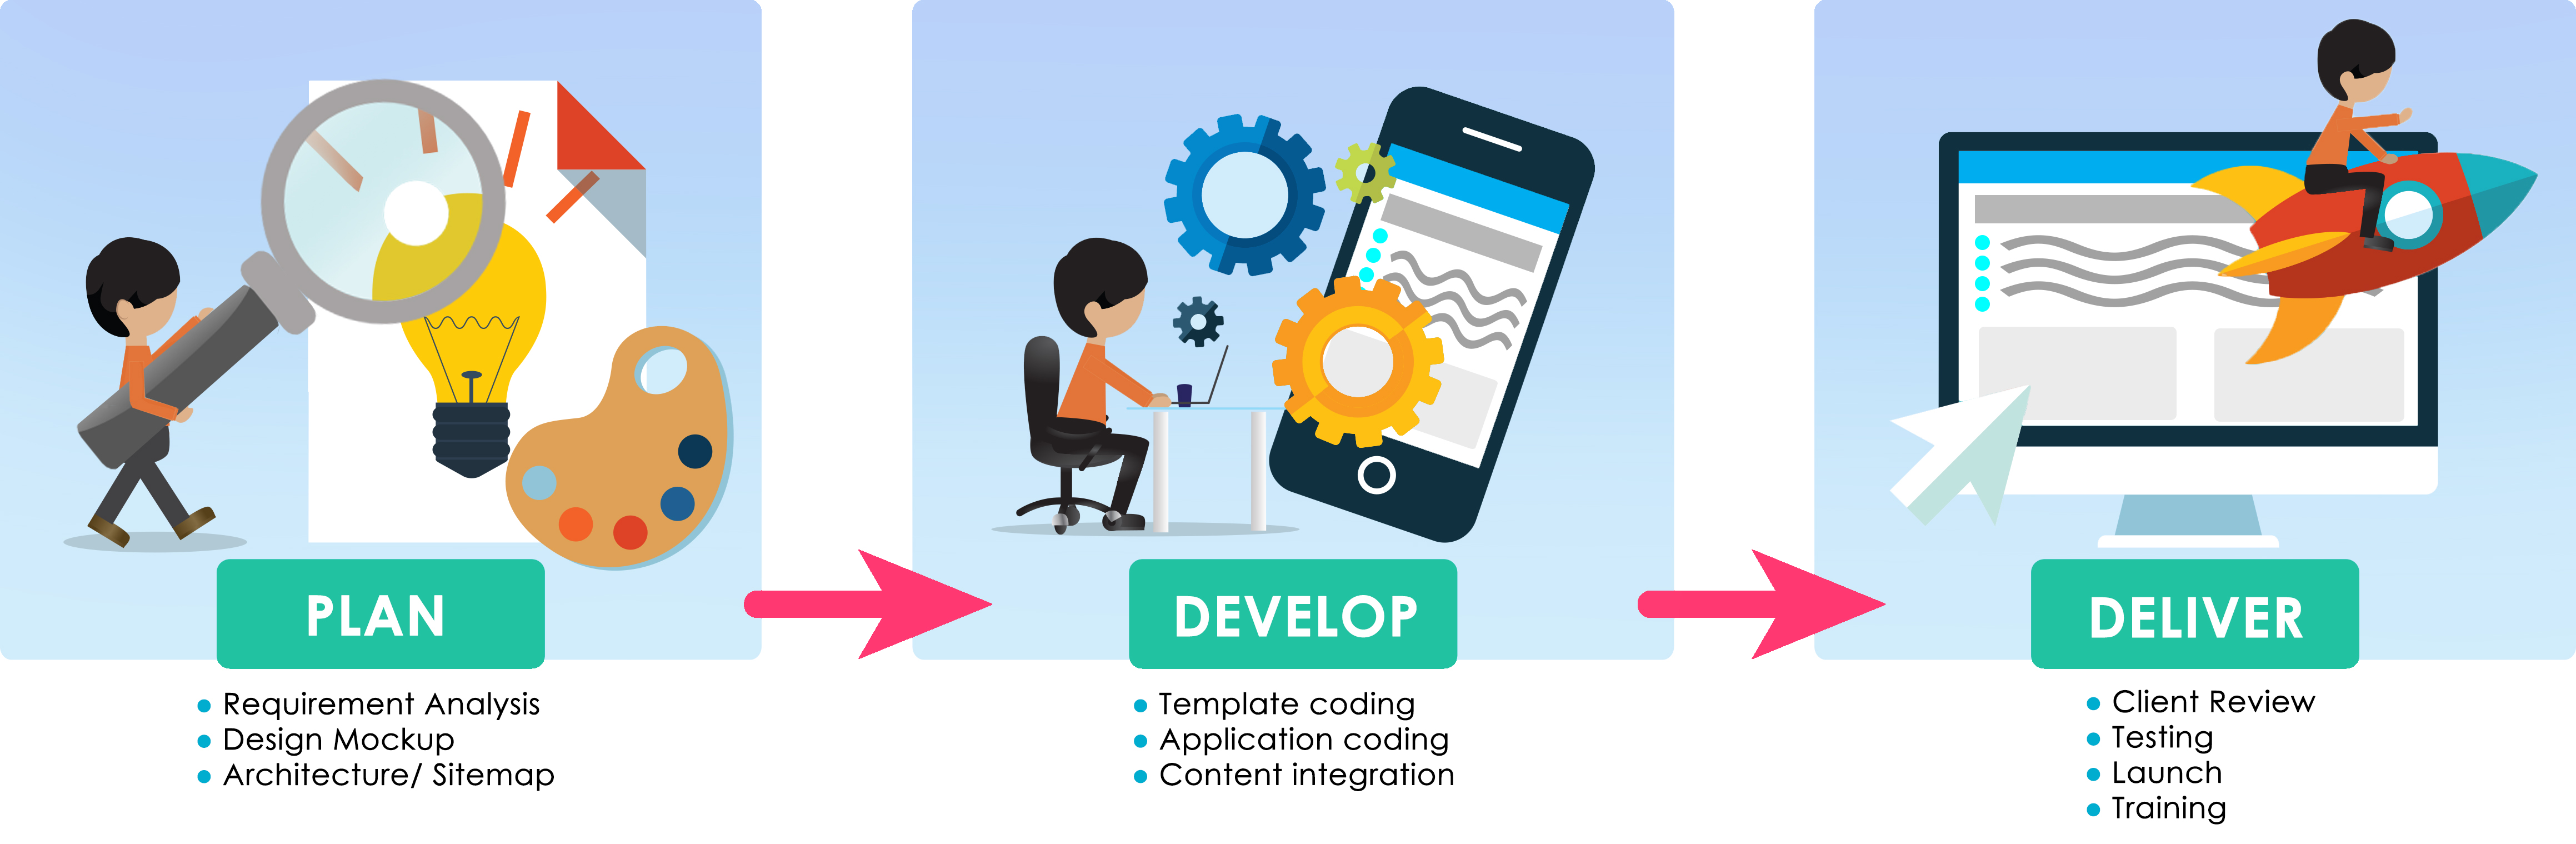 Mobile Website Development Steps